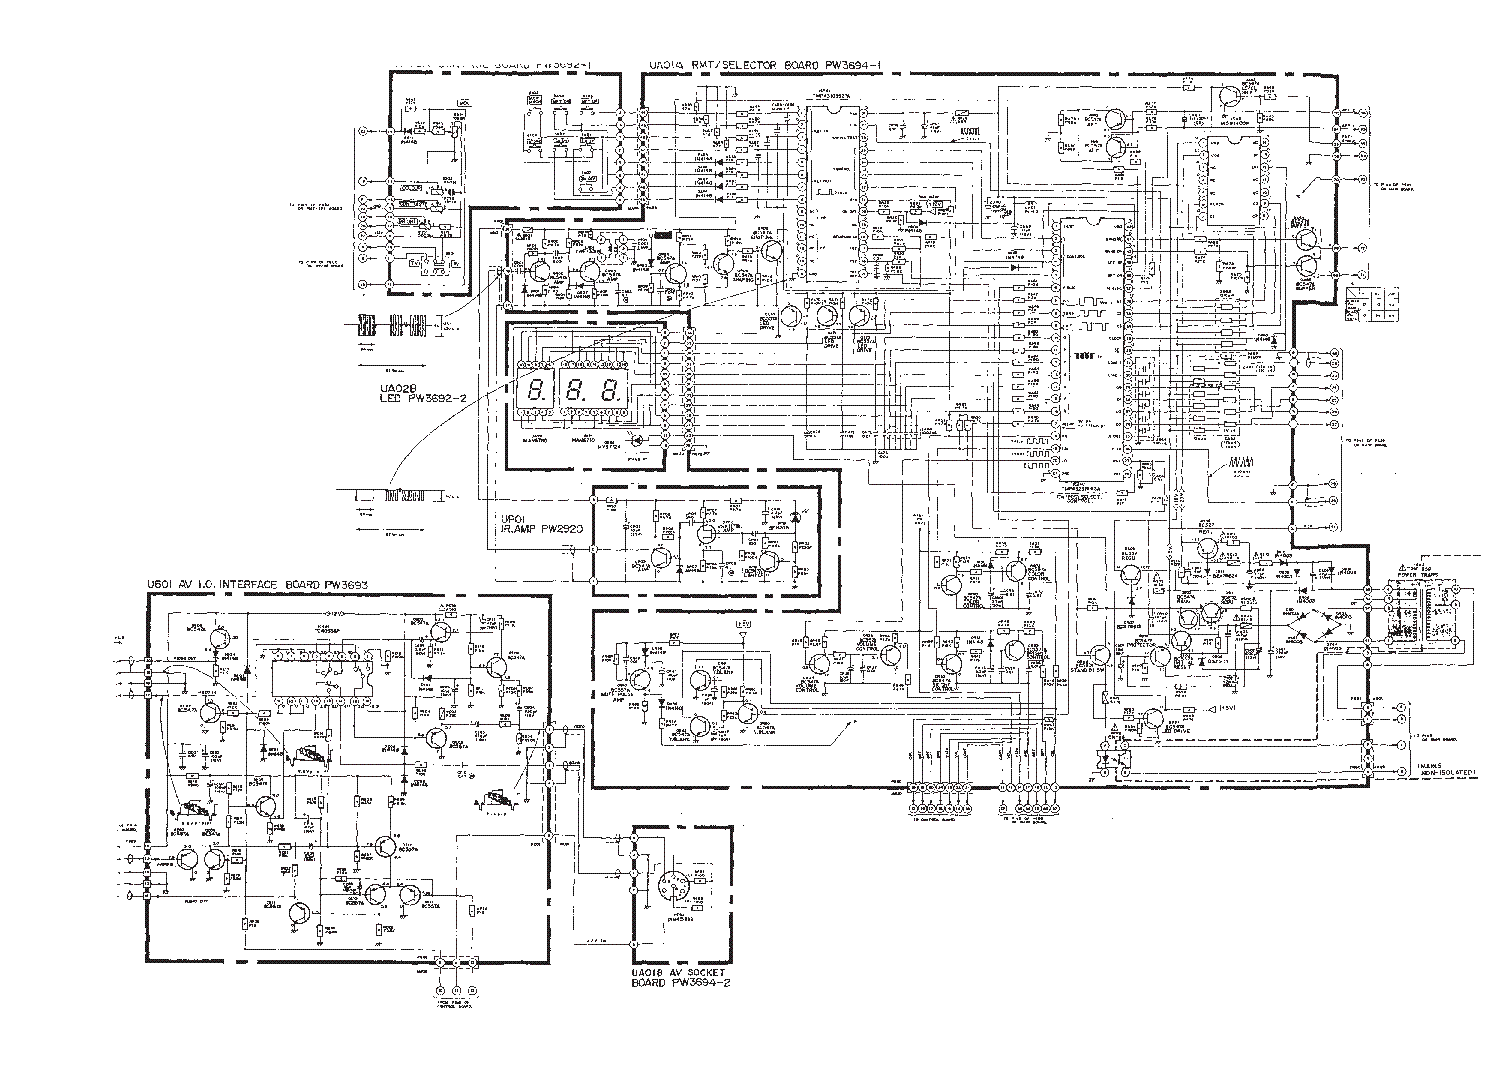 TOSHIBA 261F3W Service Manual download, schematics, eeprom